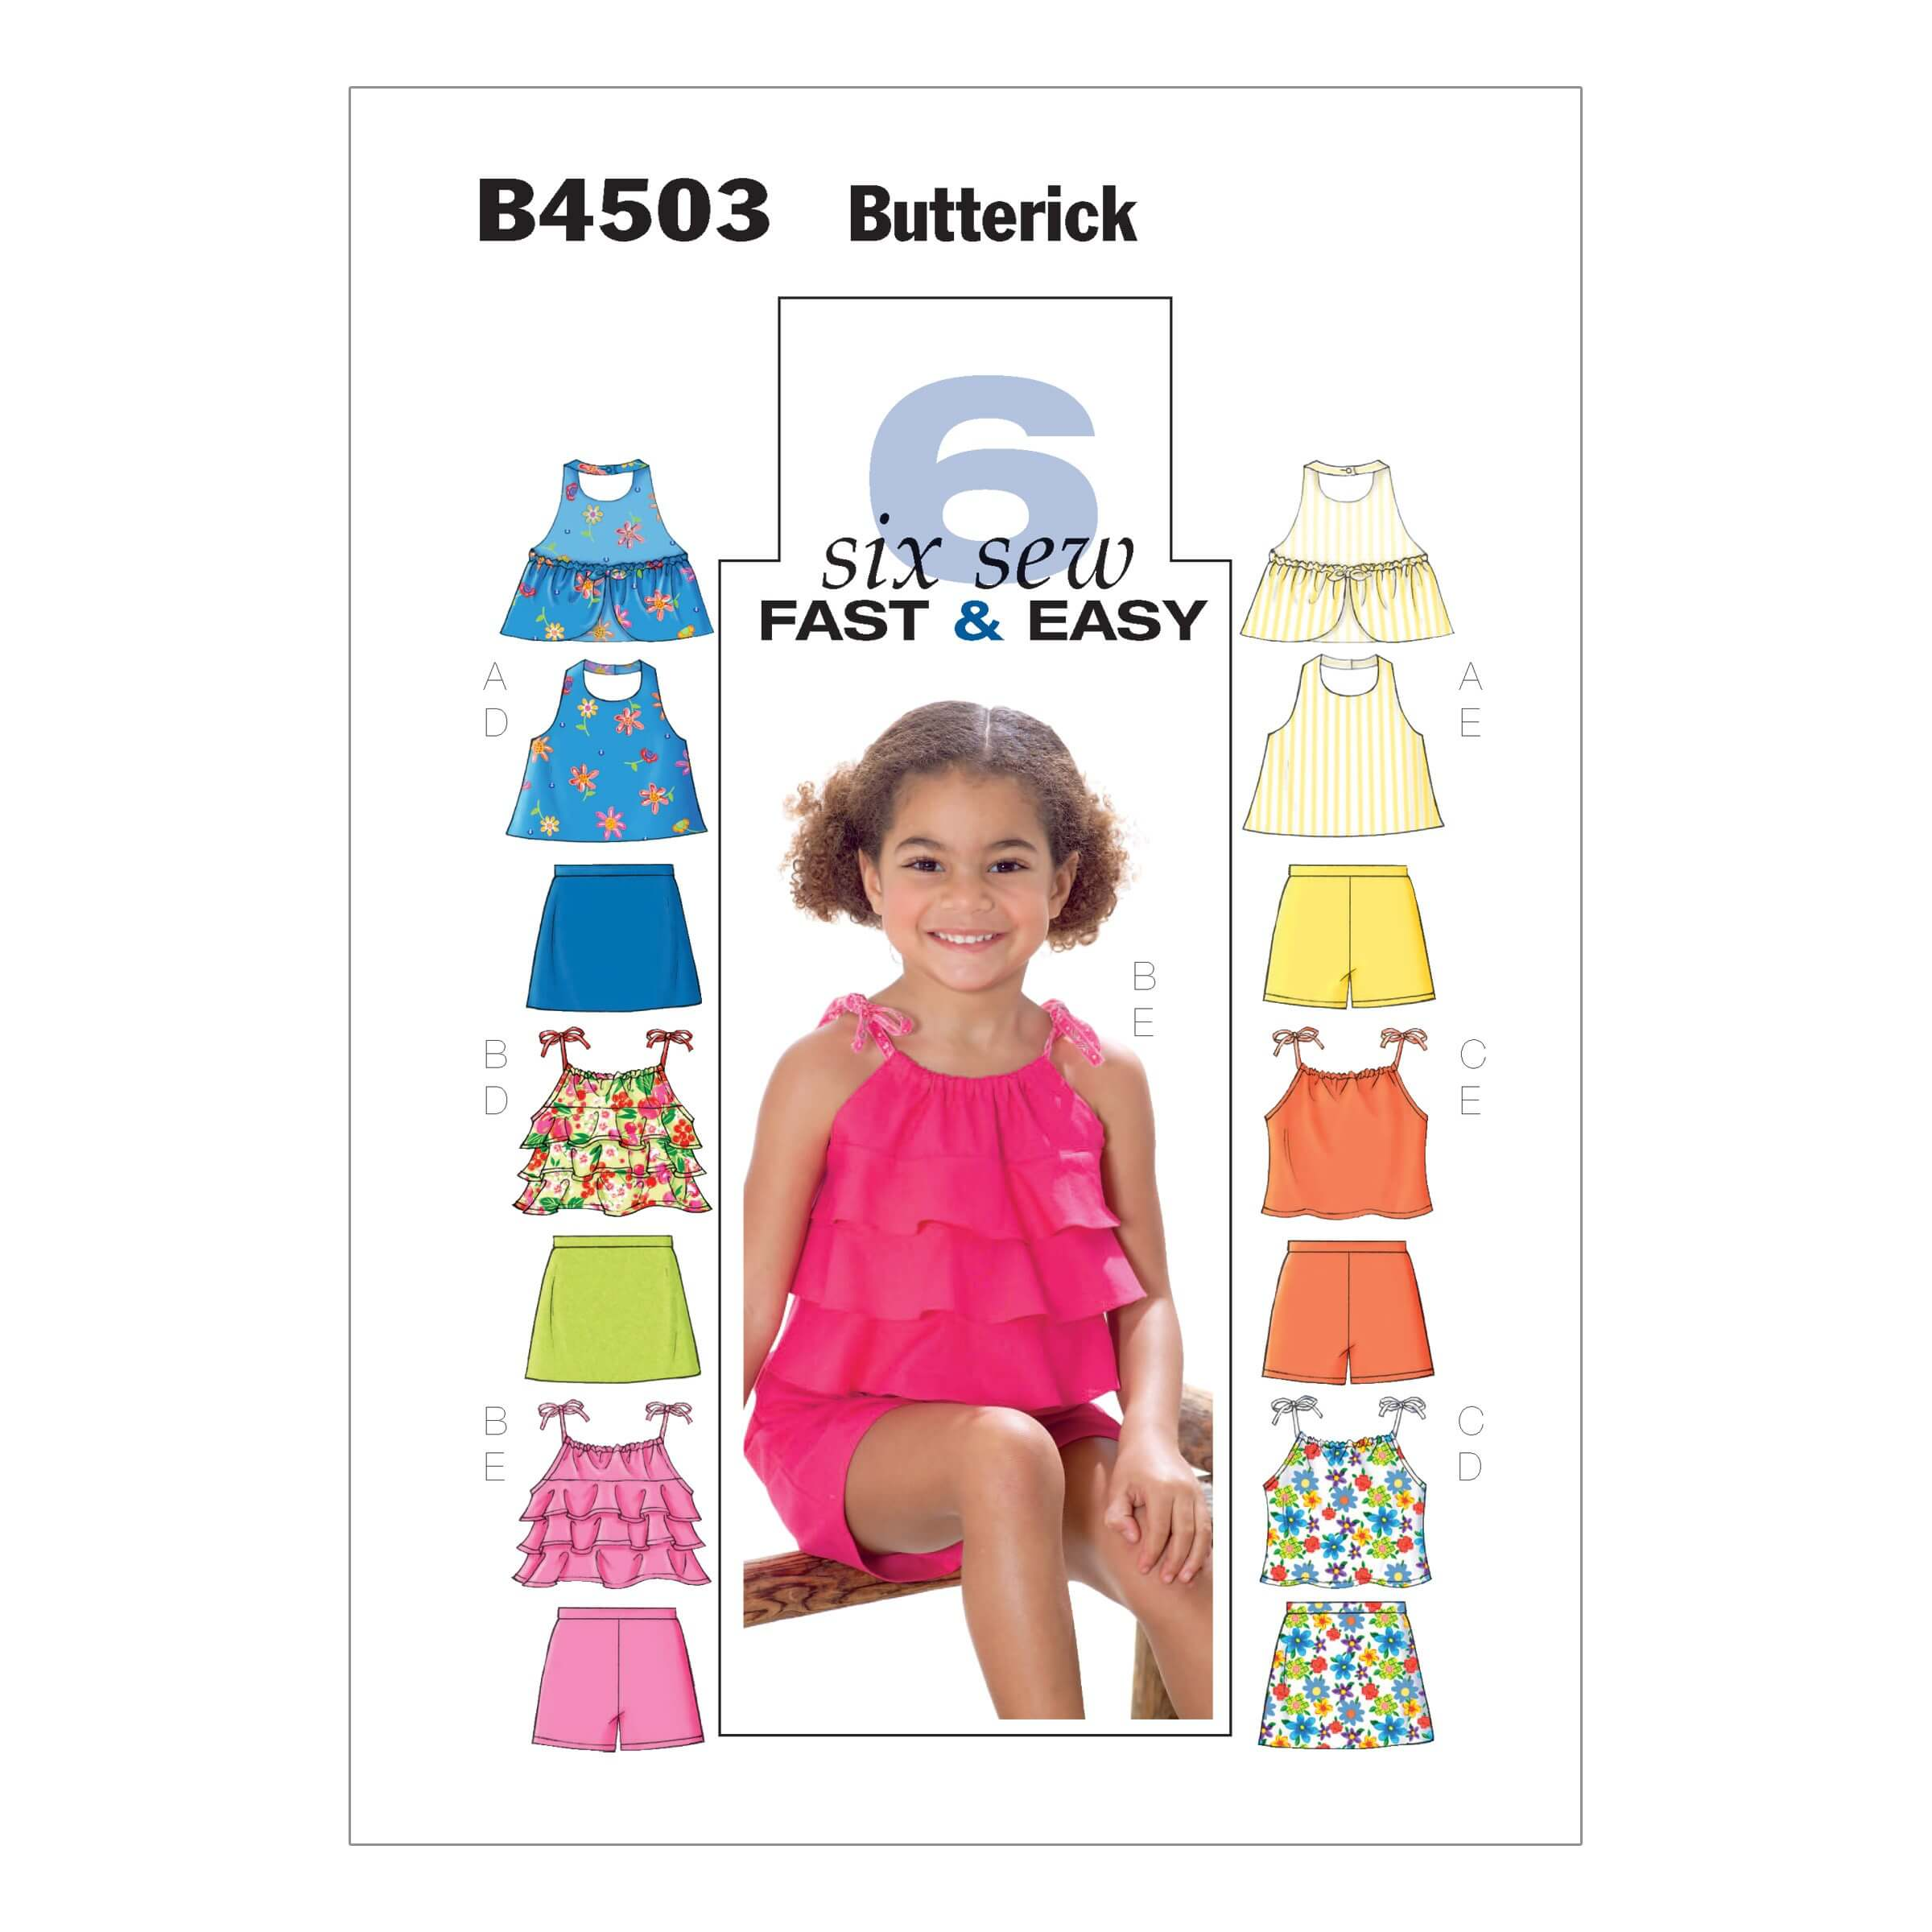 Butterick Sewing Pattern 4503 Children's Top Skort & Shorts